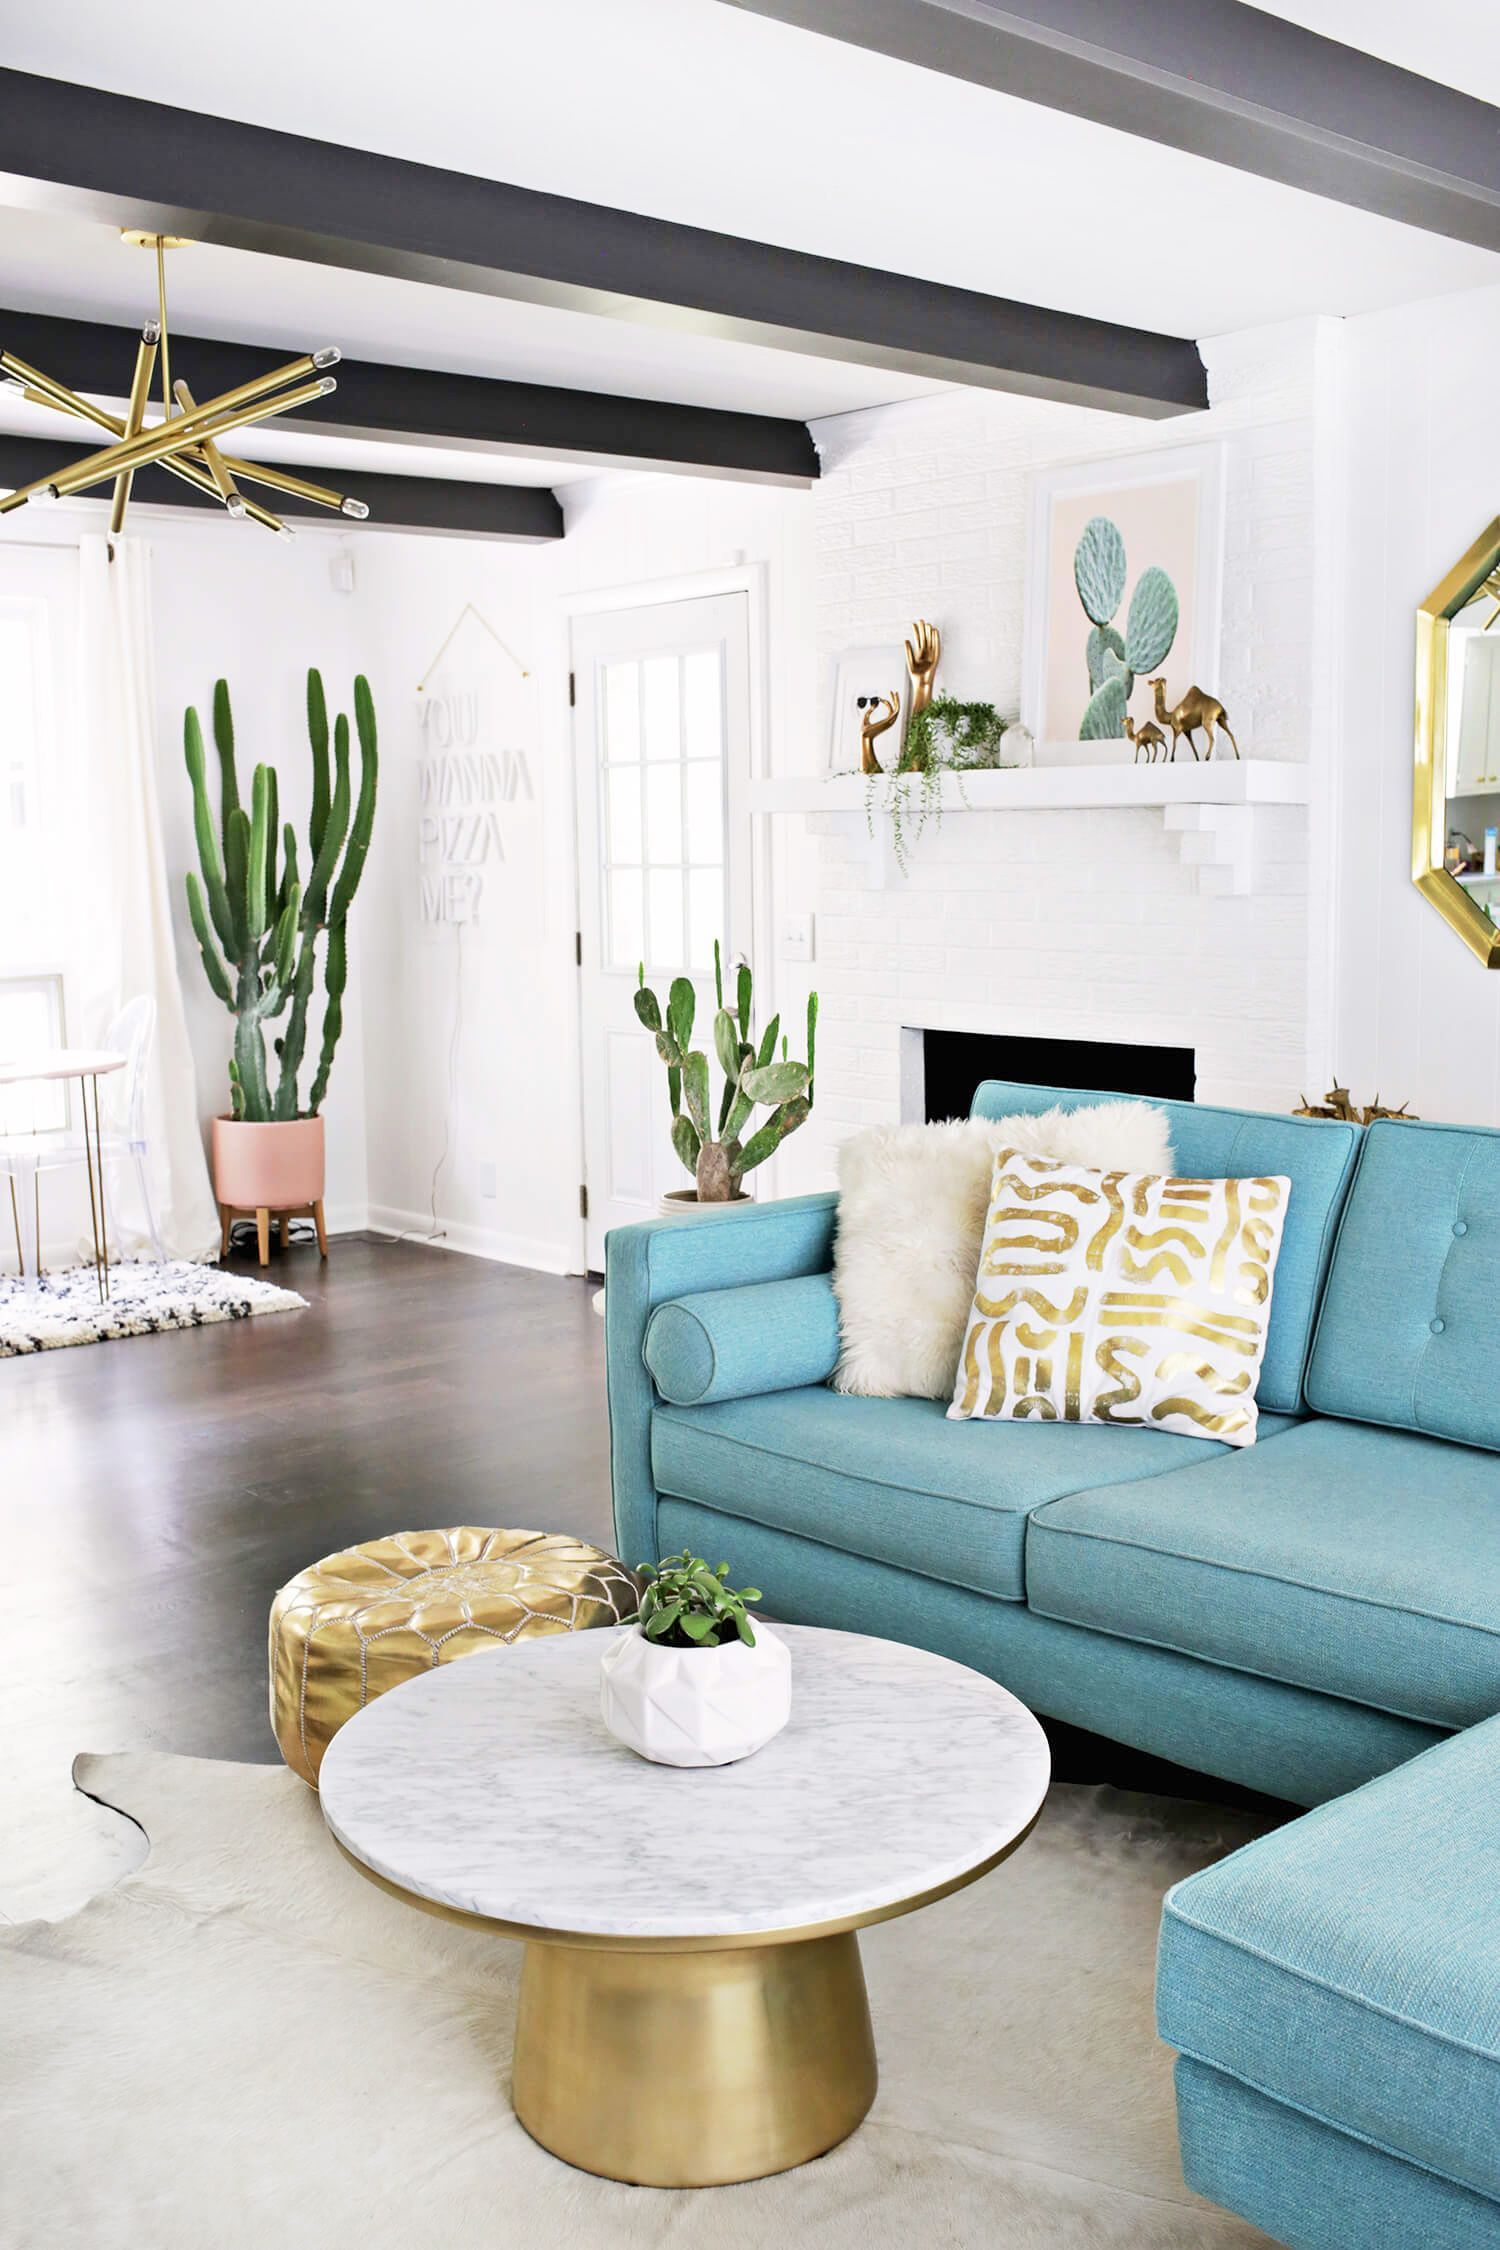 Turquoise Room Decorations This Modern Contemporary Room Is One Splendid